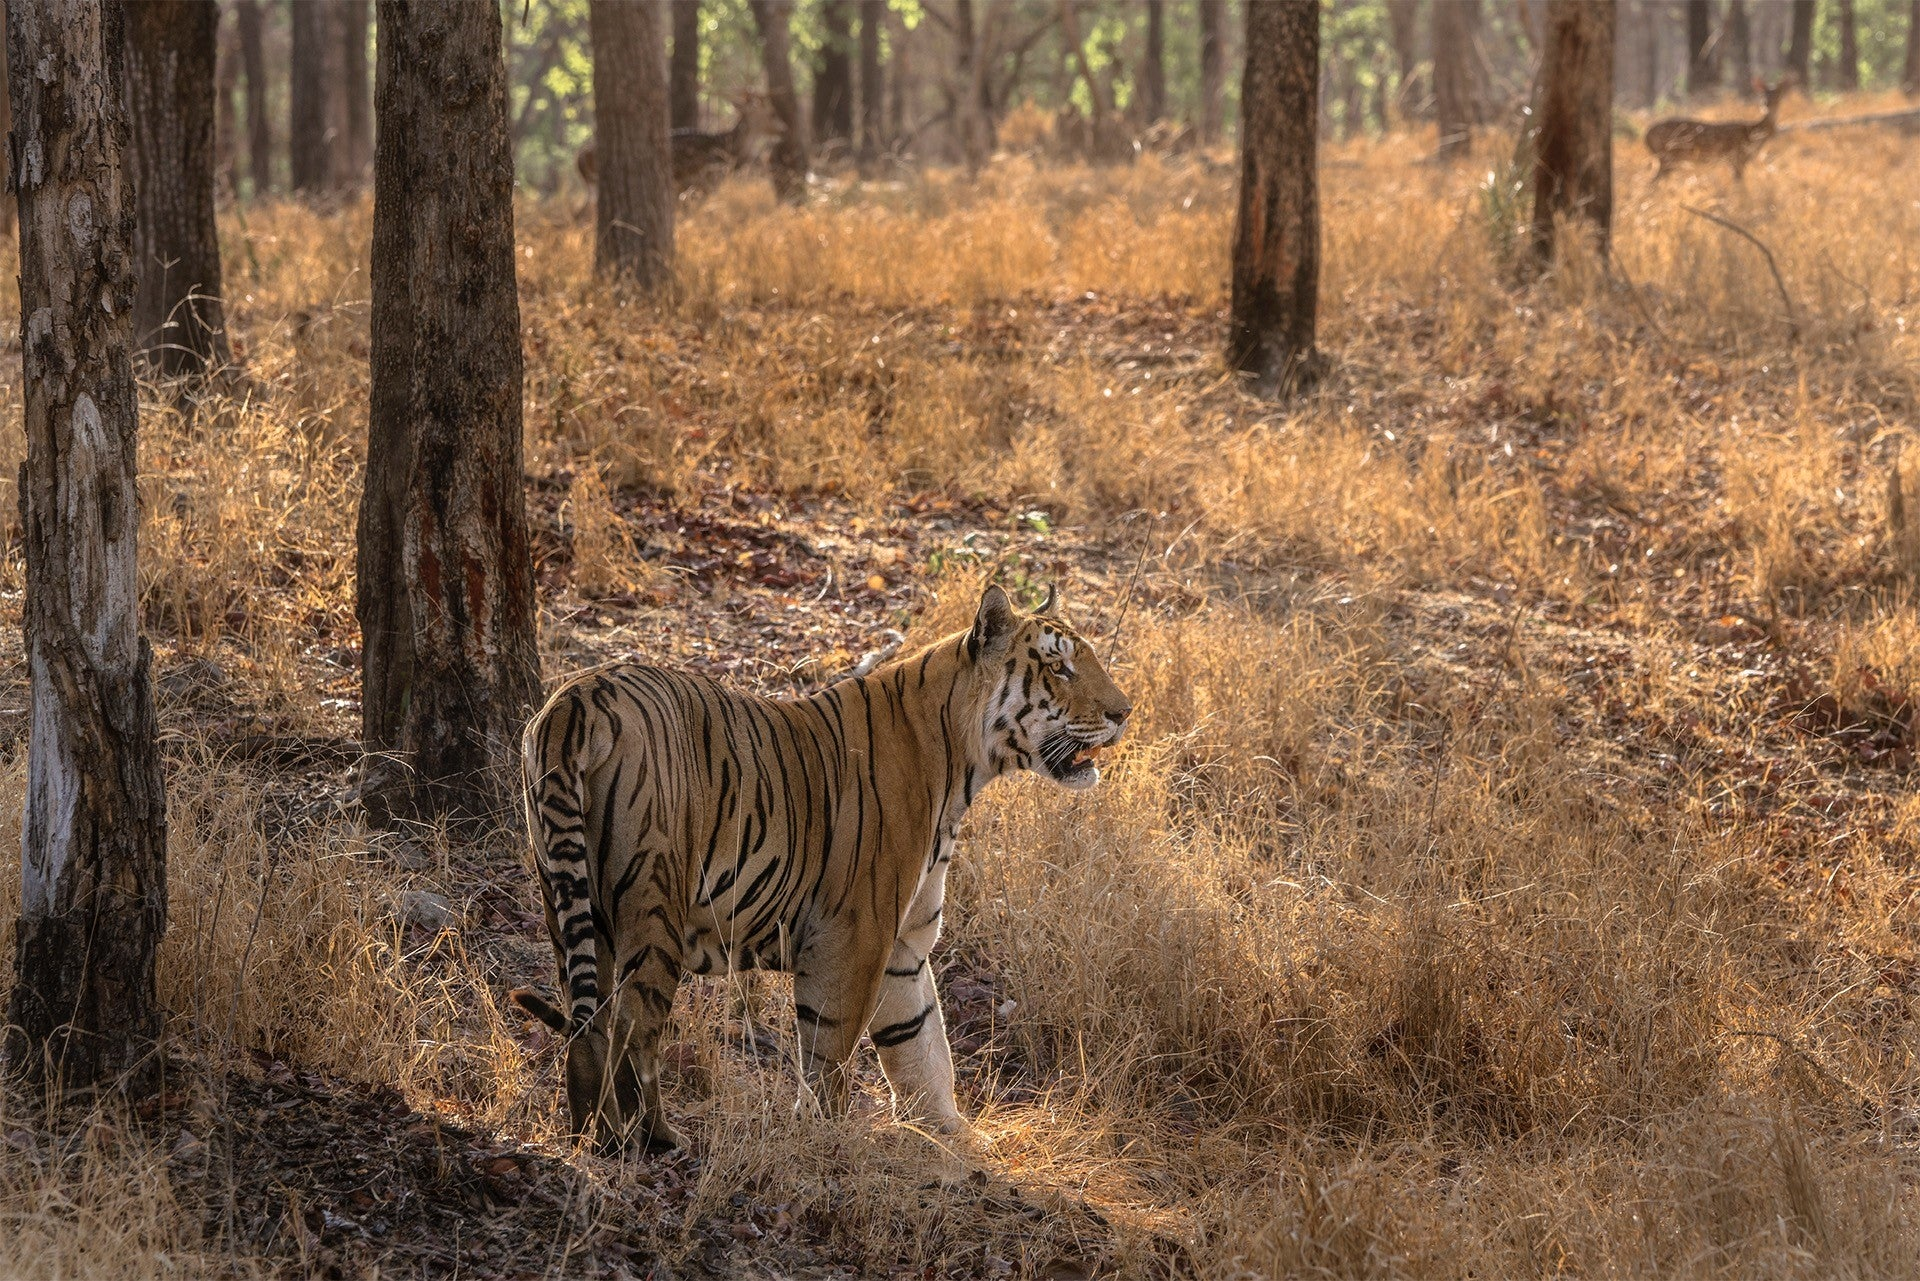 pench-tiger-free-images-travelunbounded